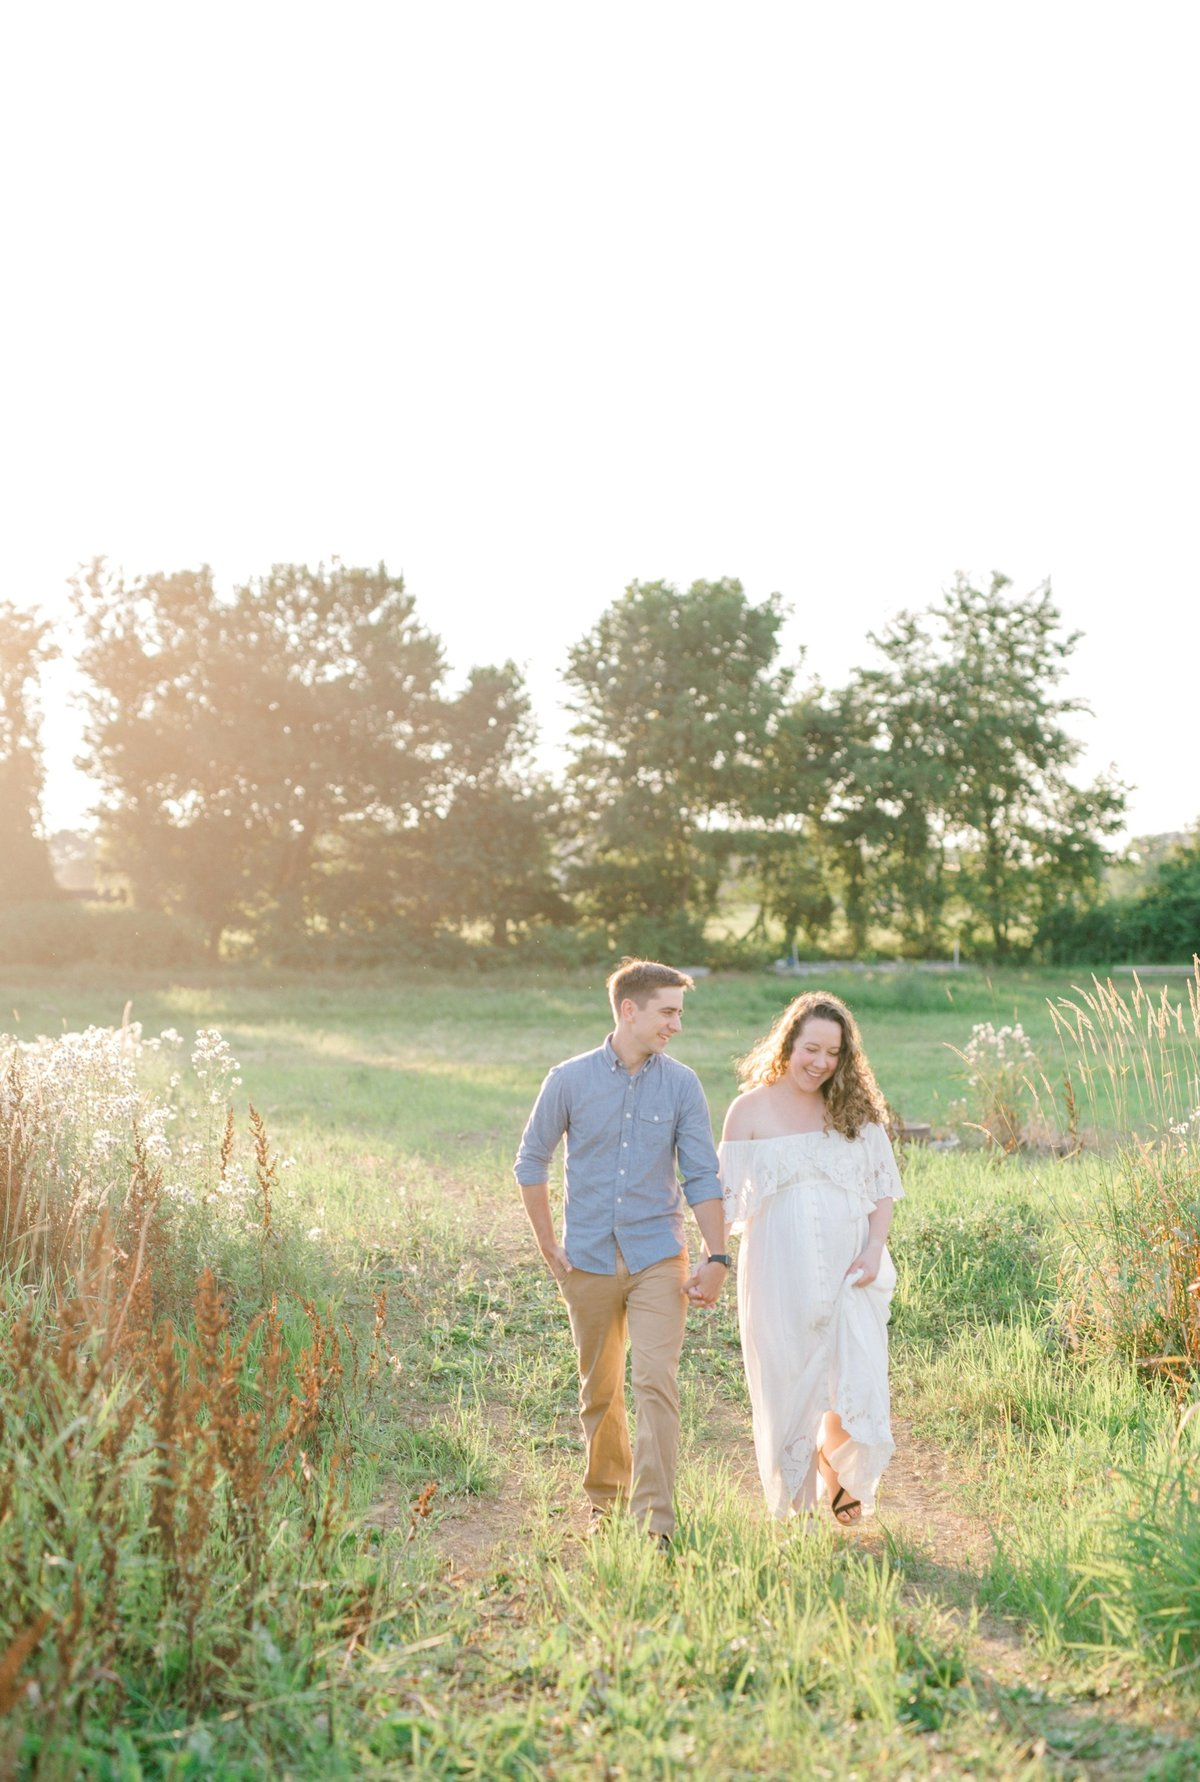 ETHEREAL SUMMER MATERNITY SESSION | MECHANICSBURG MATERNITY PHOTOGRAPHER_0976